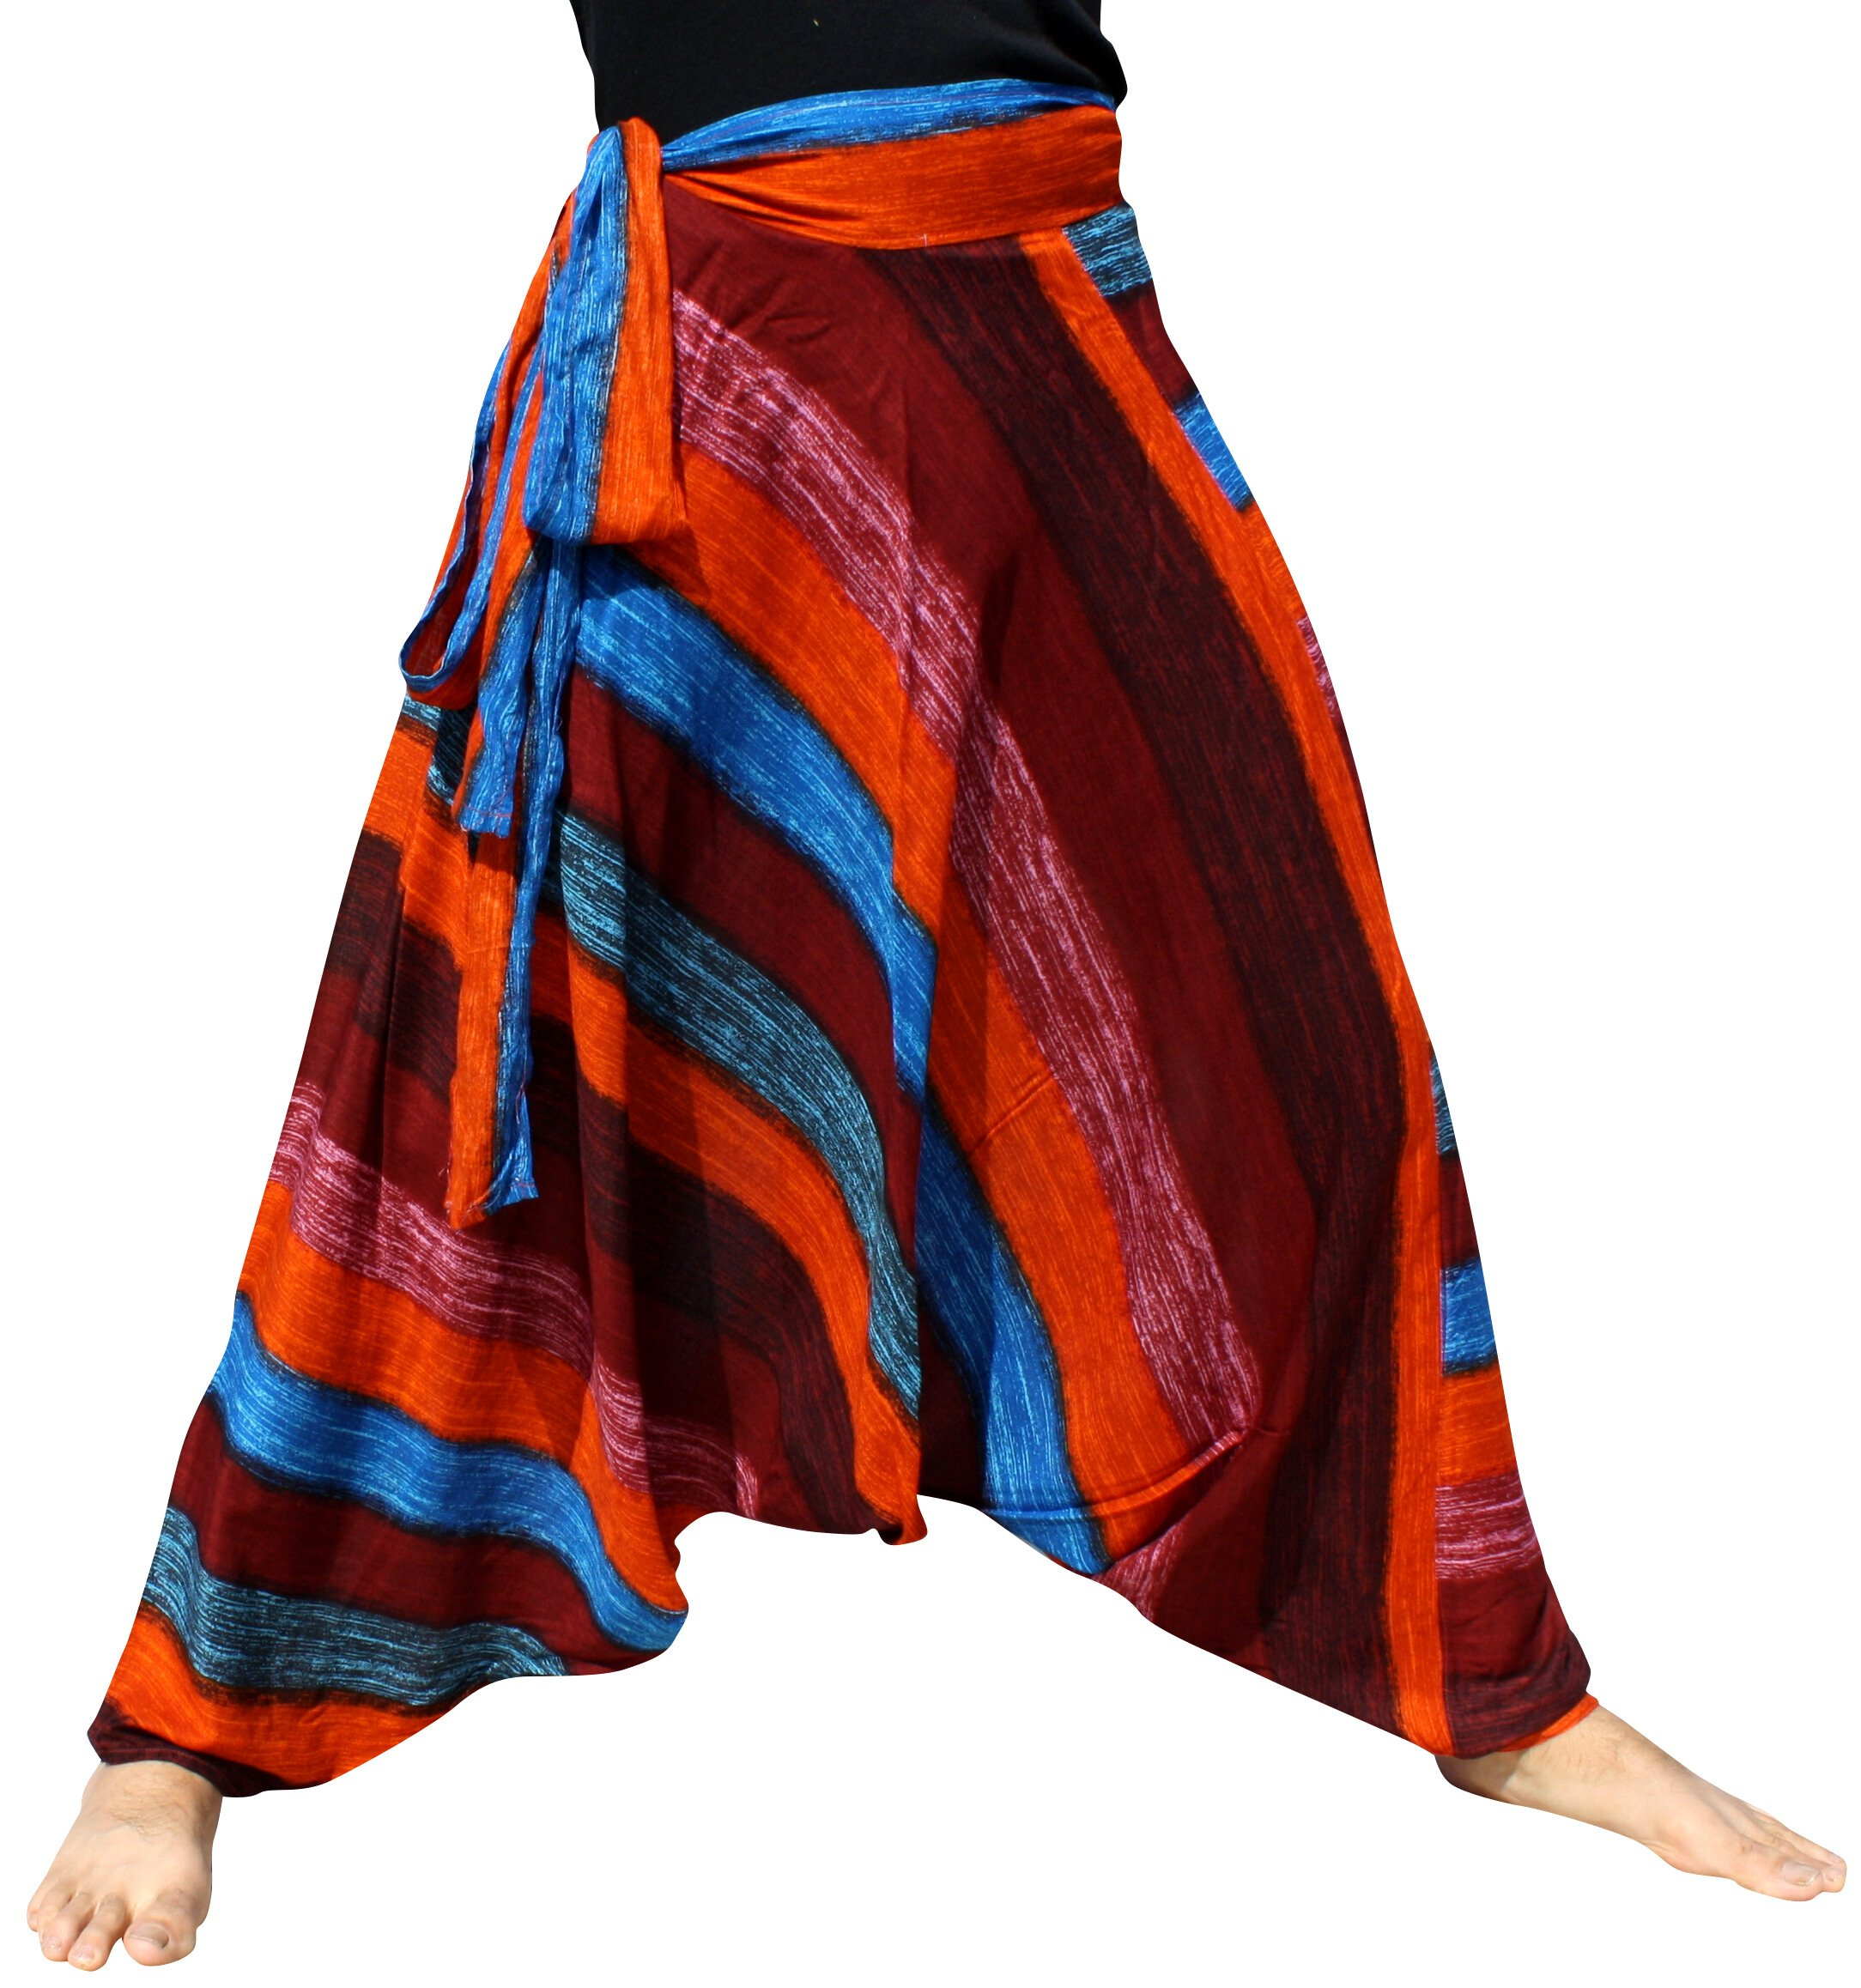 Raan Pah Muang Mixed Art Baggy Side Tie Mao Hmong Hill Tribe Harem Pants All Size, Large, Rainbow Blue Brown by Raan Pah Muang